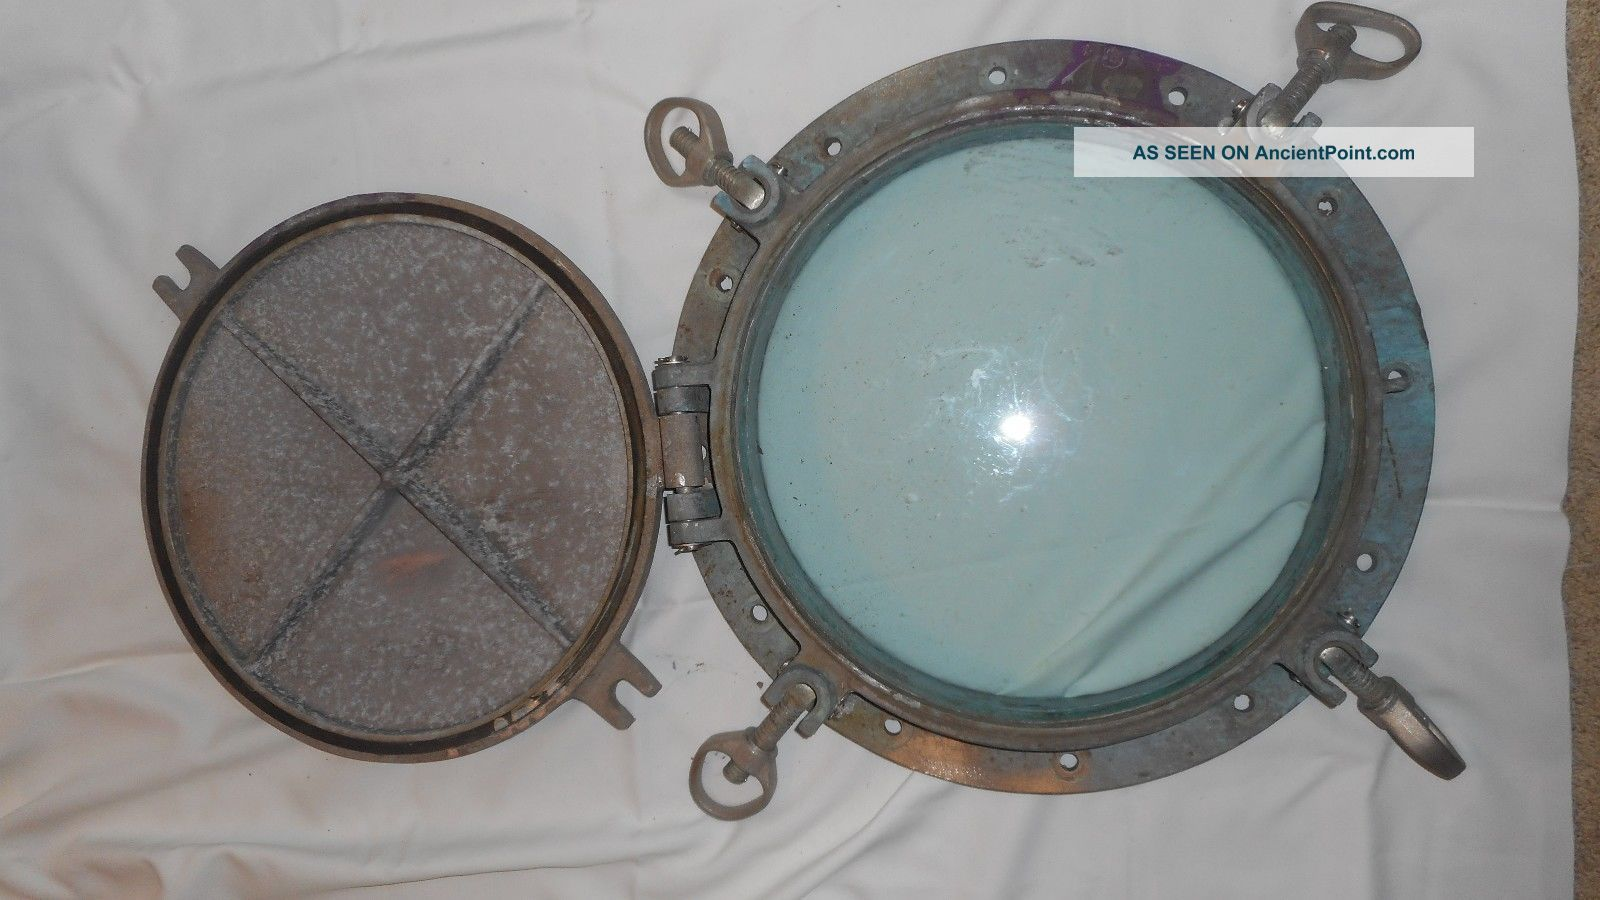 Vintage Nautical Porthole - Brass Or Bronze Portholes photo